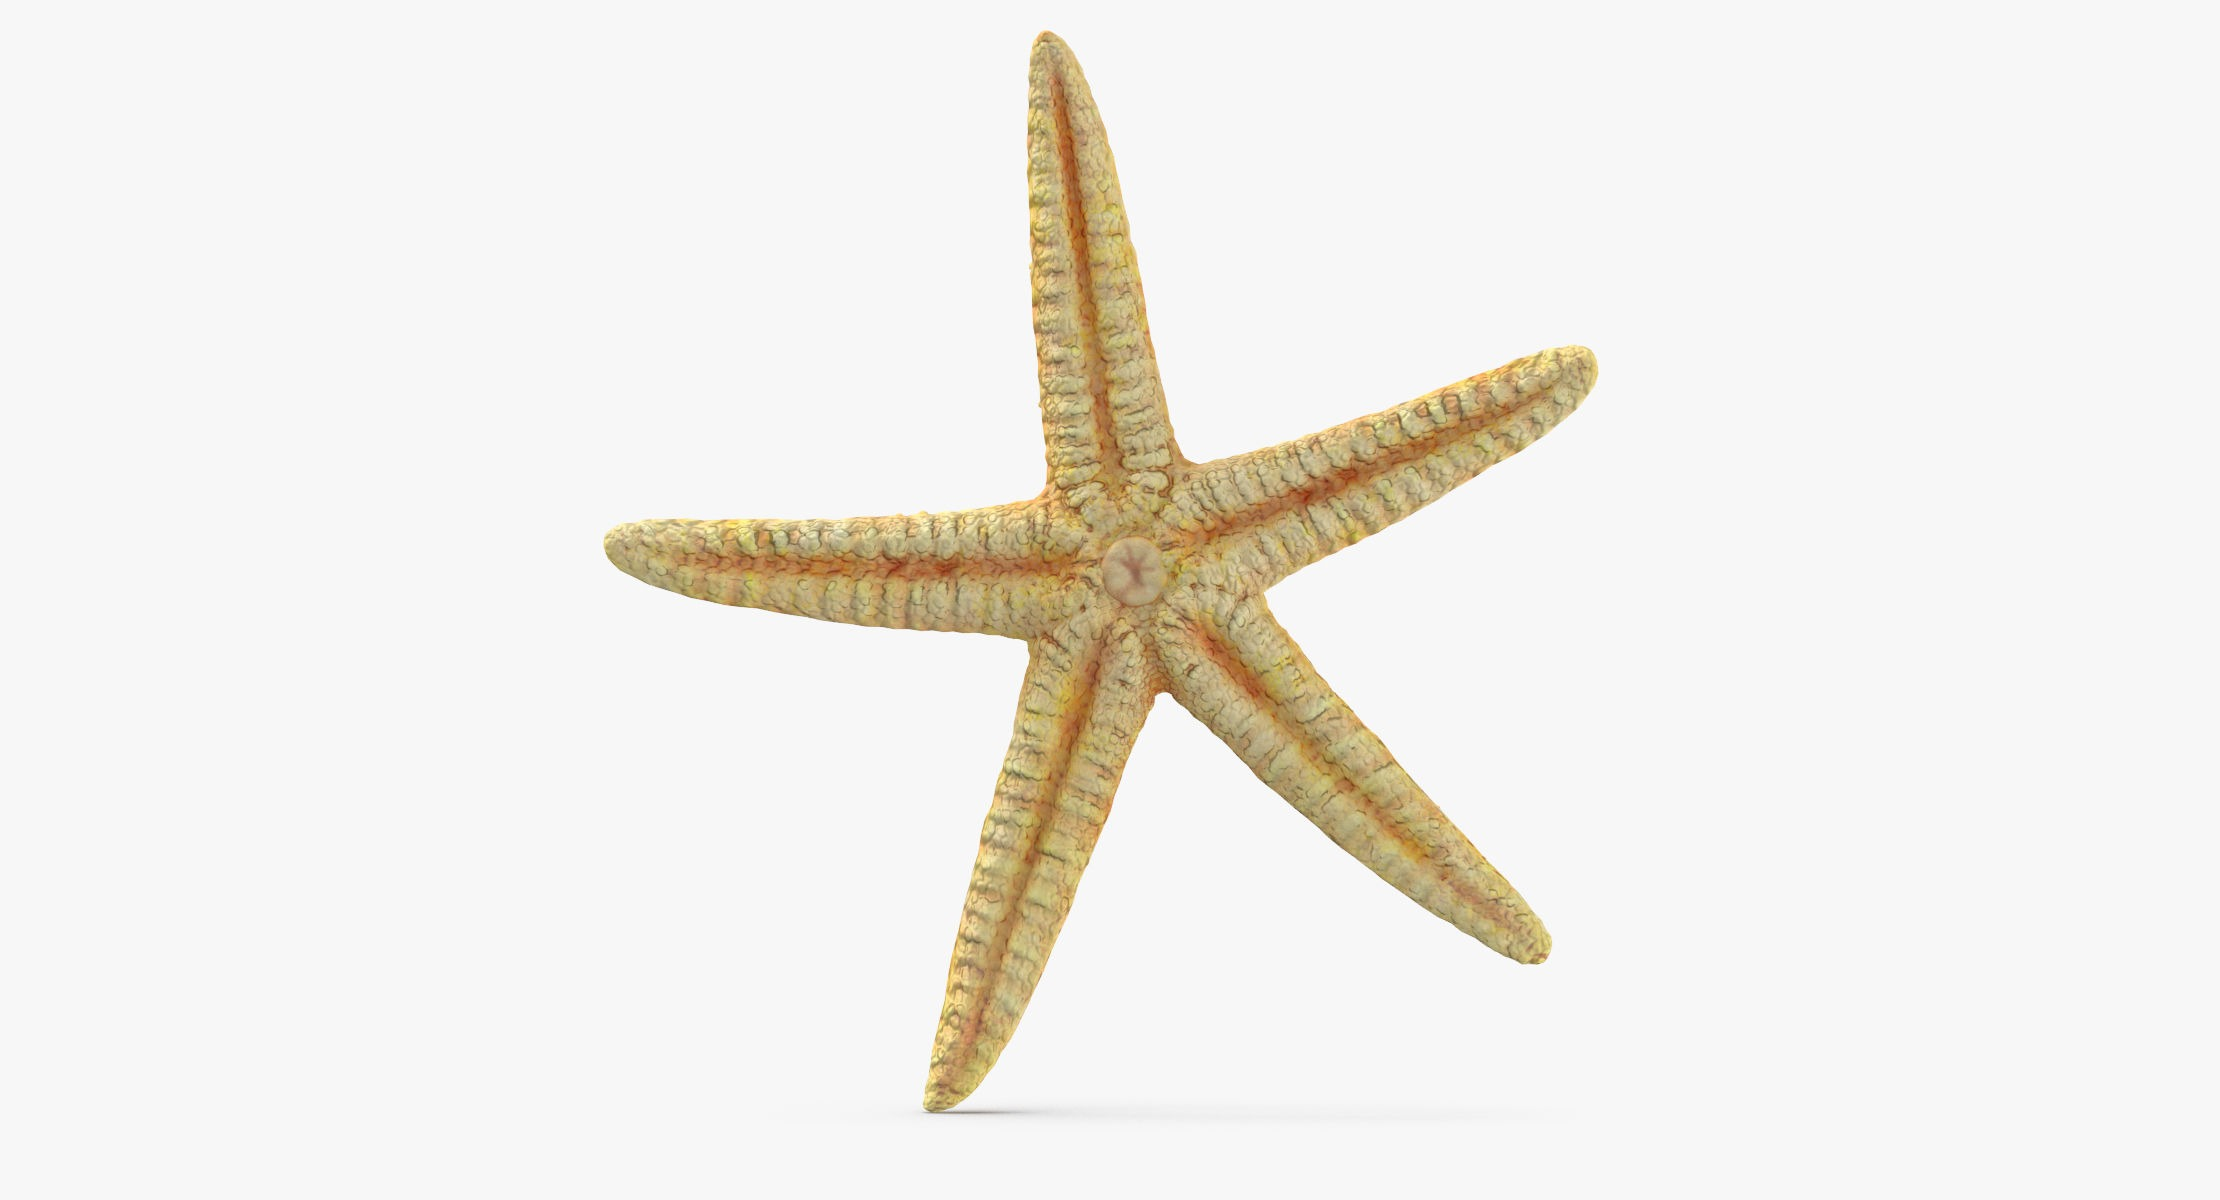 Dried Flat Starfish - reel 1